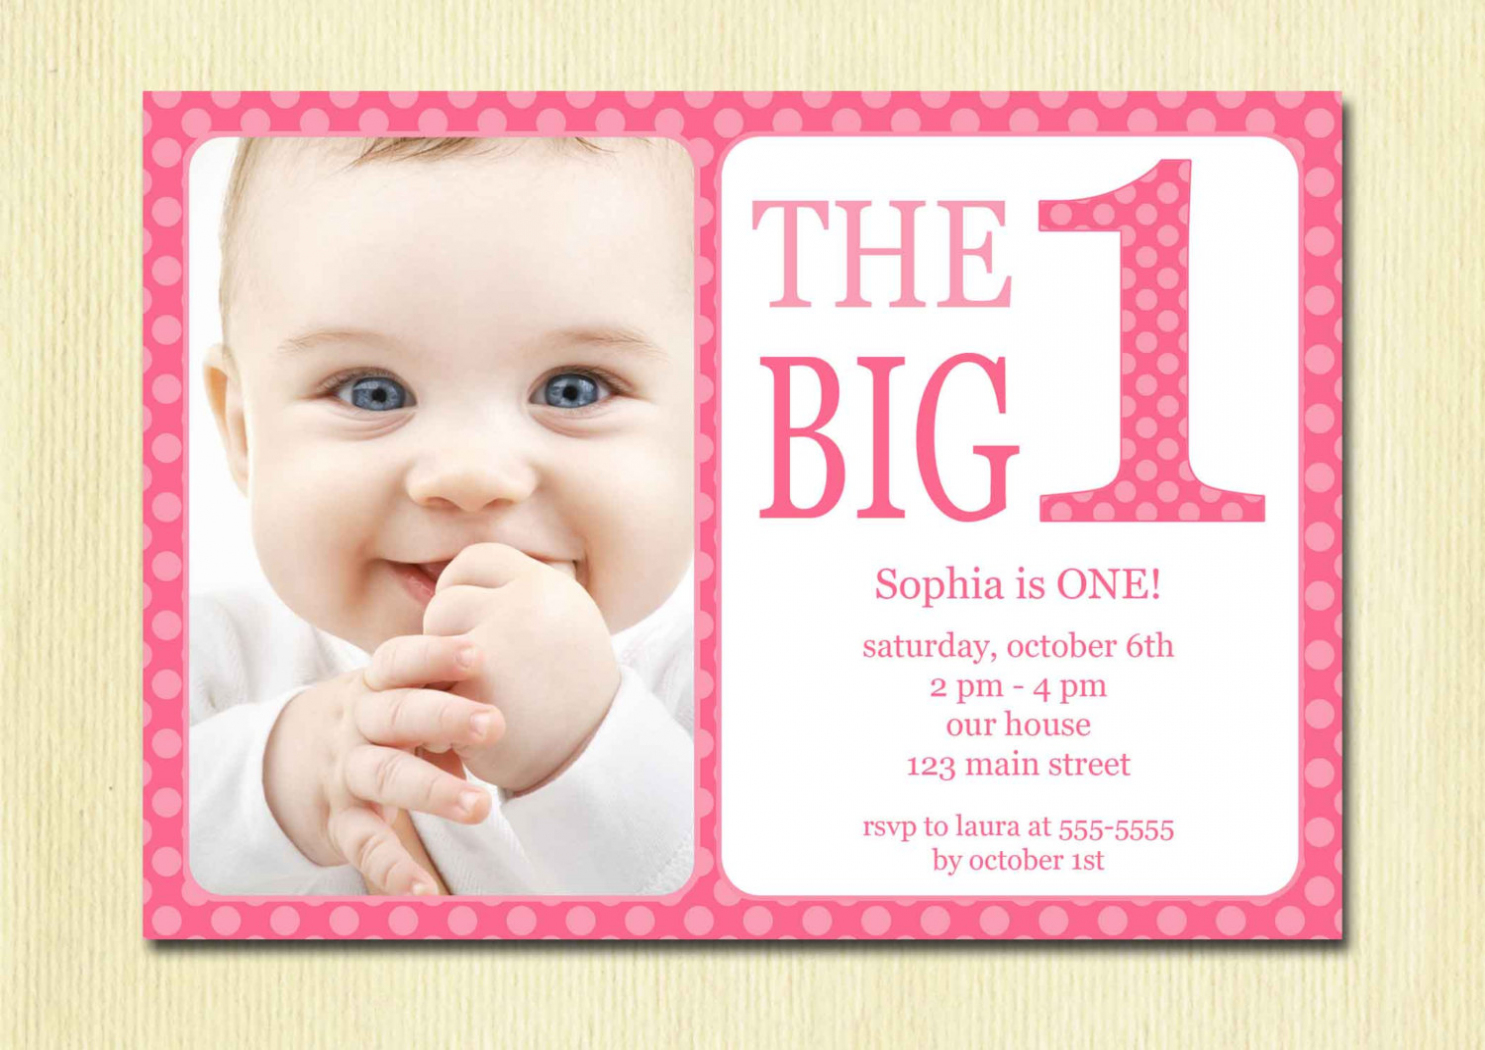 create birthday invitation card with photo free ; free-1st-birthday-invitations-custom-invitation-template-design-1st-birthday-invitation-card-maker